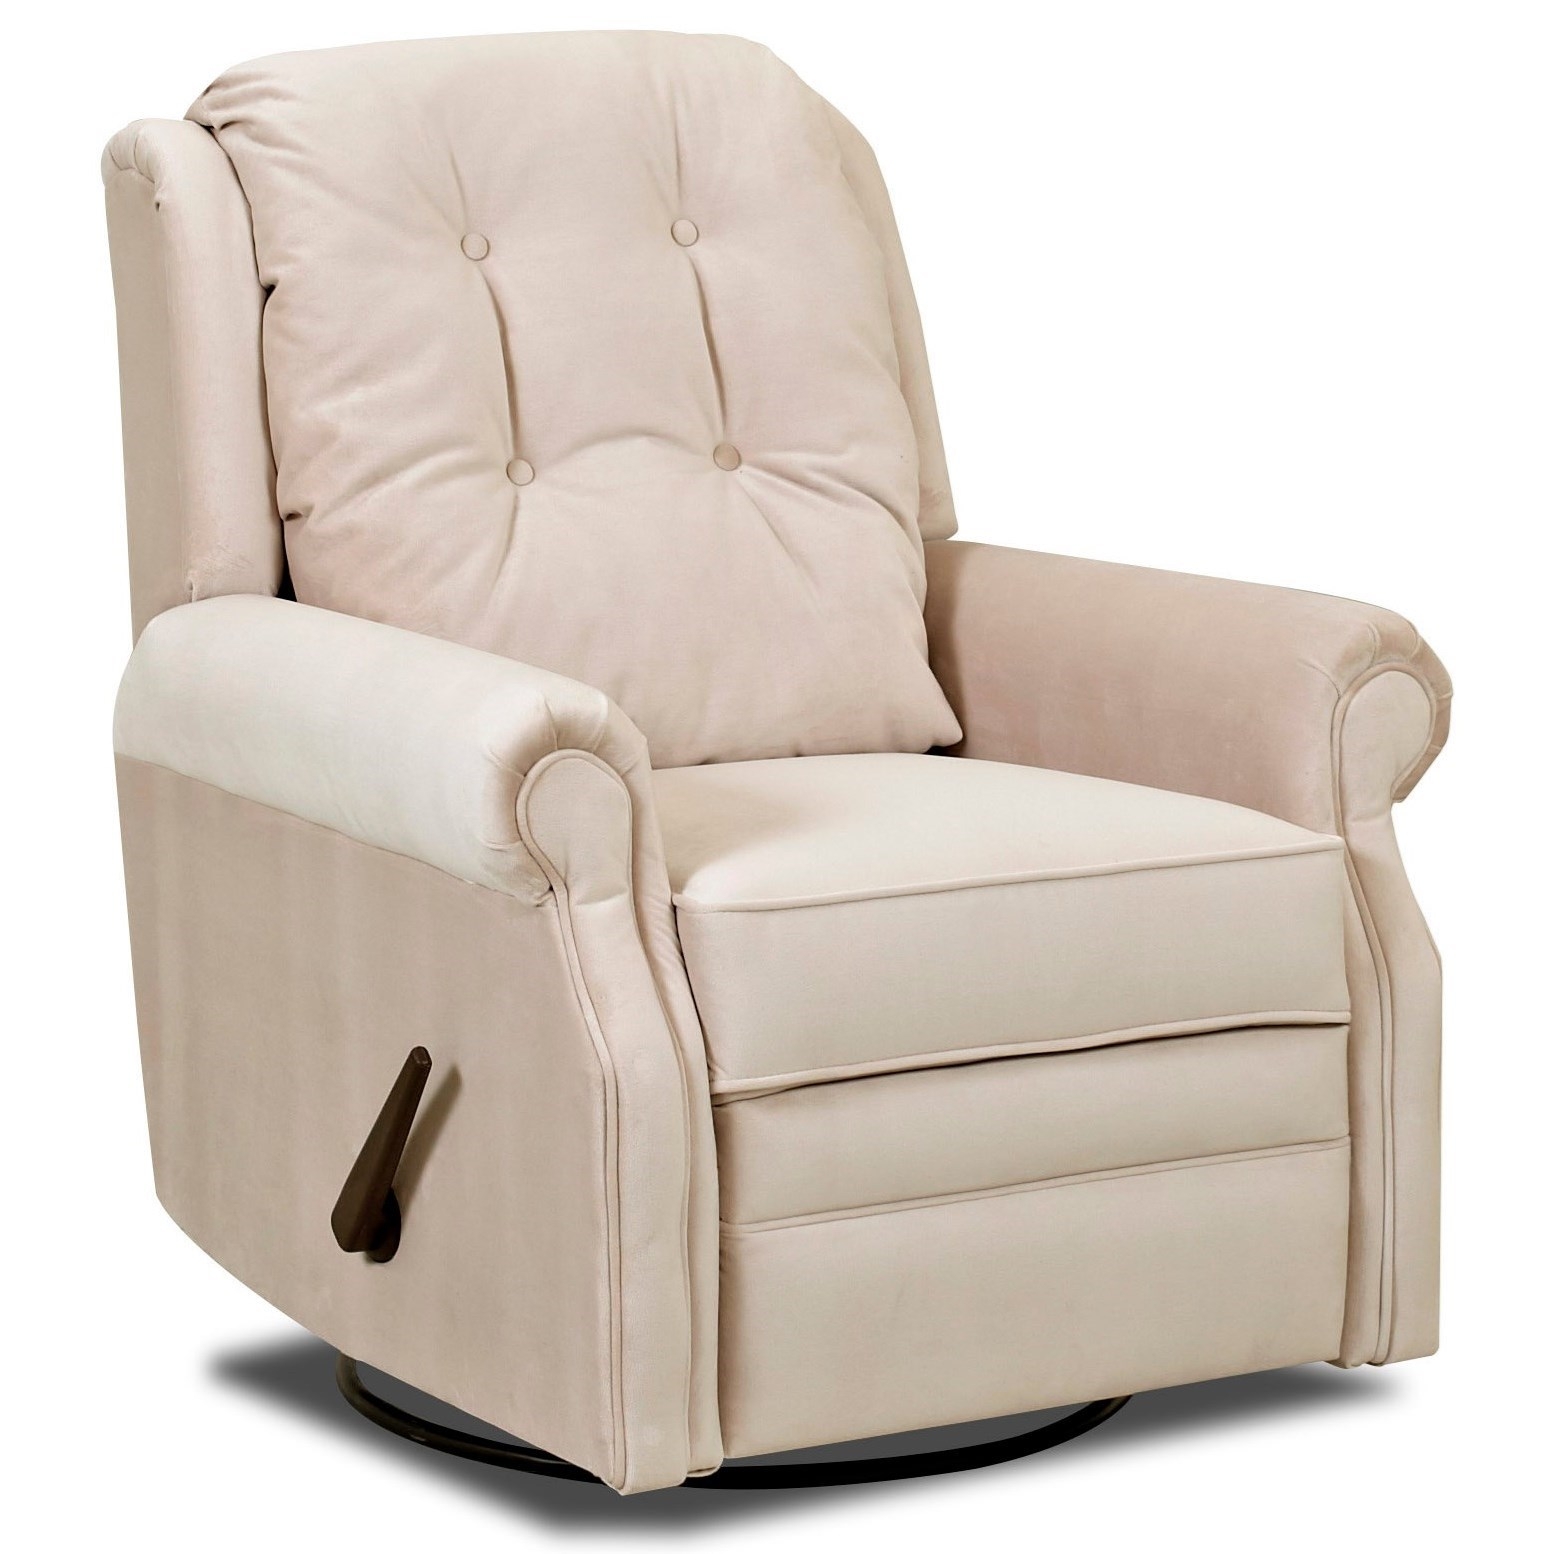 Sand Key Manual Swivel Rocking Reclining Chair by Klaussner at Northeast Factory Direct